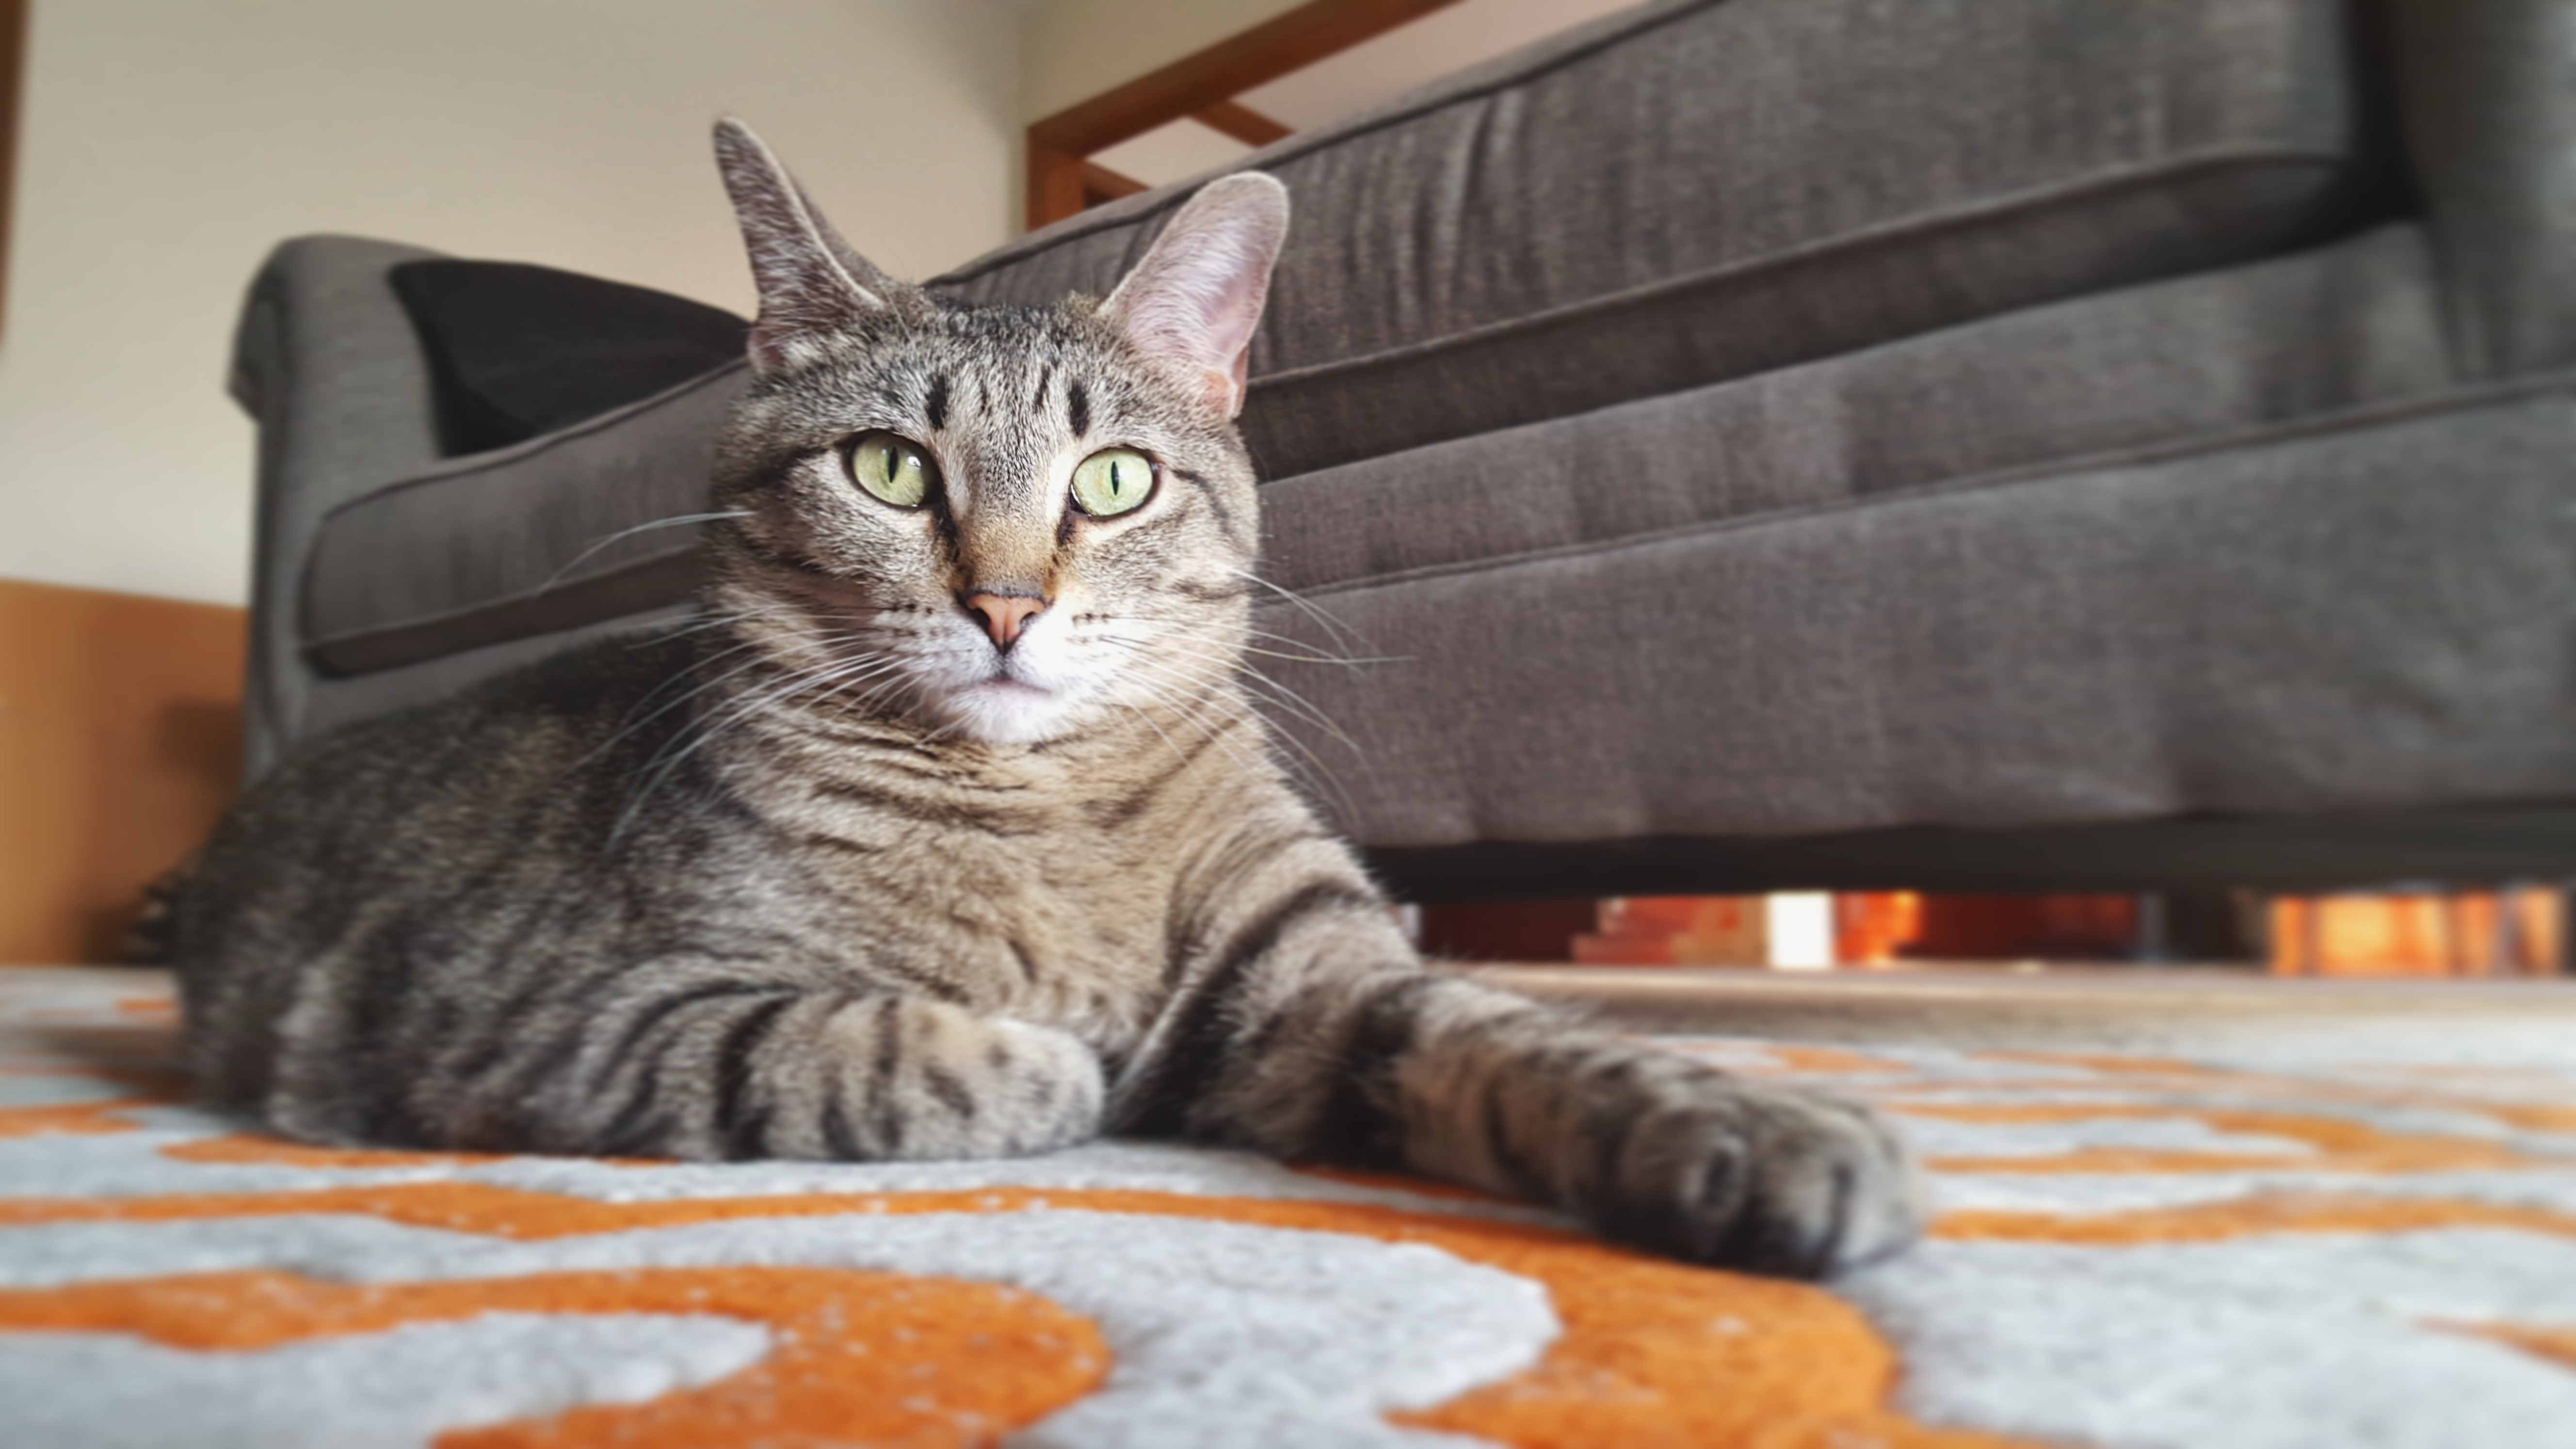 Aurora, a black/grey/tan tabby tiger, is lying on the rug in front of the couch like a queen.